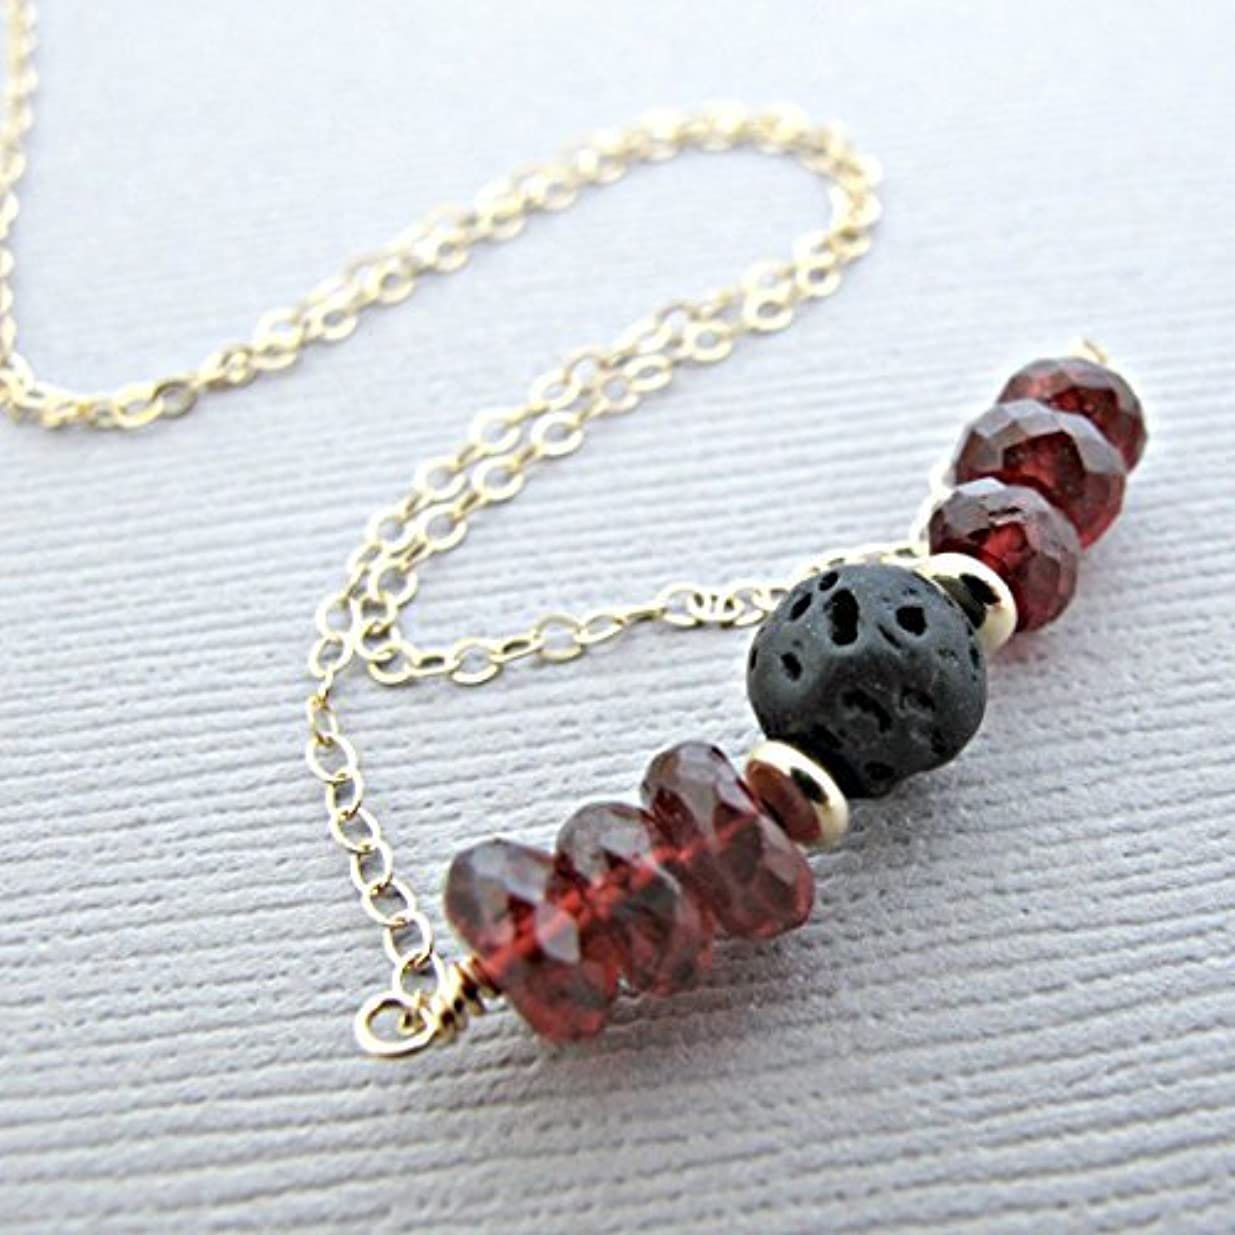 と離す騒ぎGarnet Lava Pendant Essential Oil Necklace Diffuser Aromatherapy - Simple Minimalist Lava Bead Diffuser Necklace...